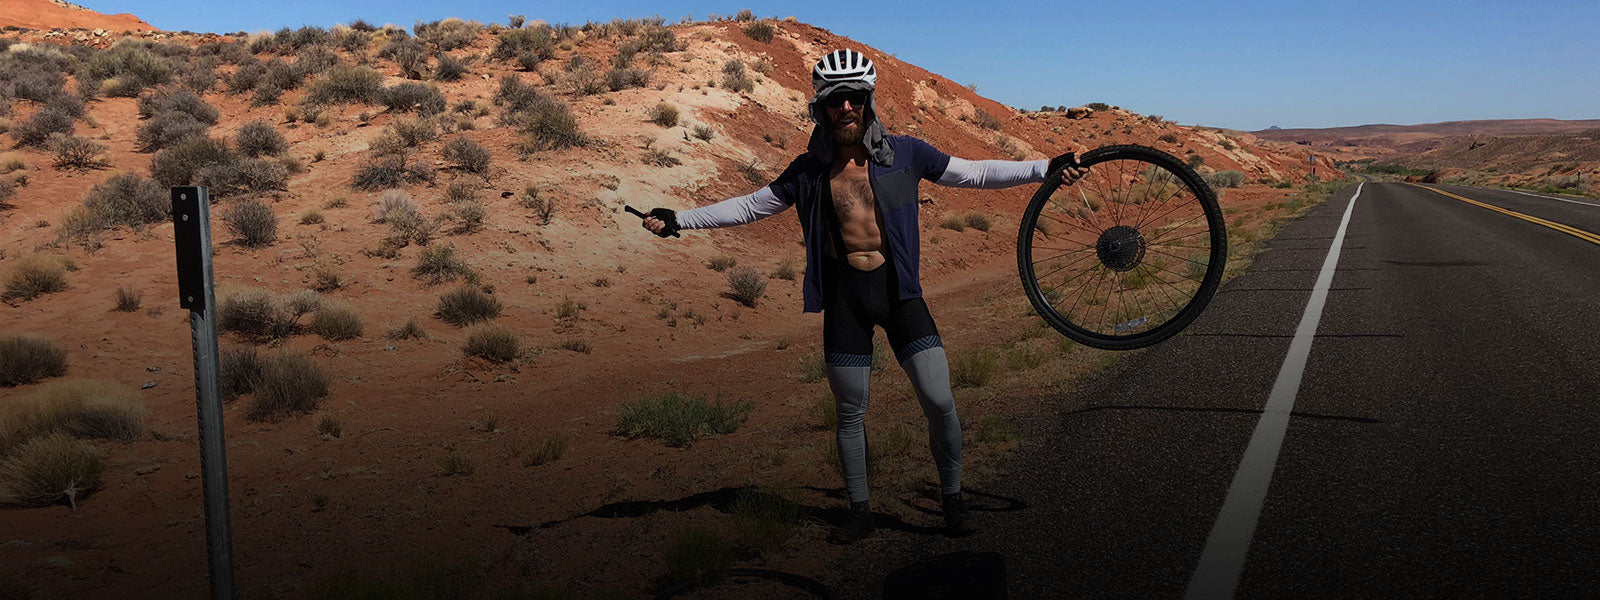 Stoutabout - Cross Country Cycling Adventures In The USA